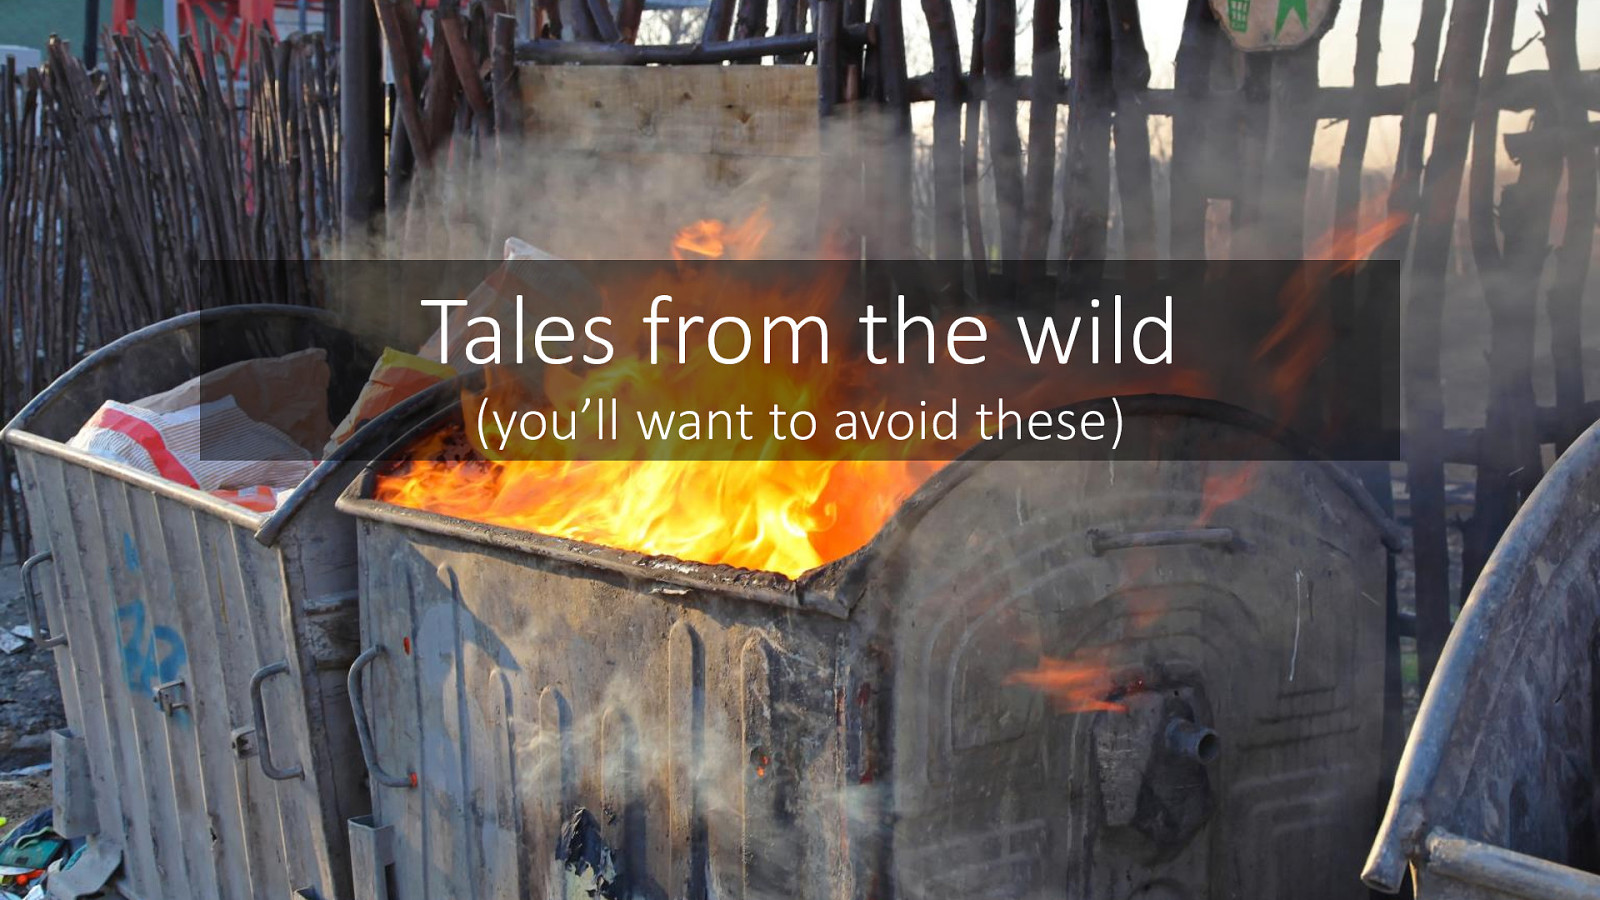 26 Feature Branches and other tales from the wild